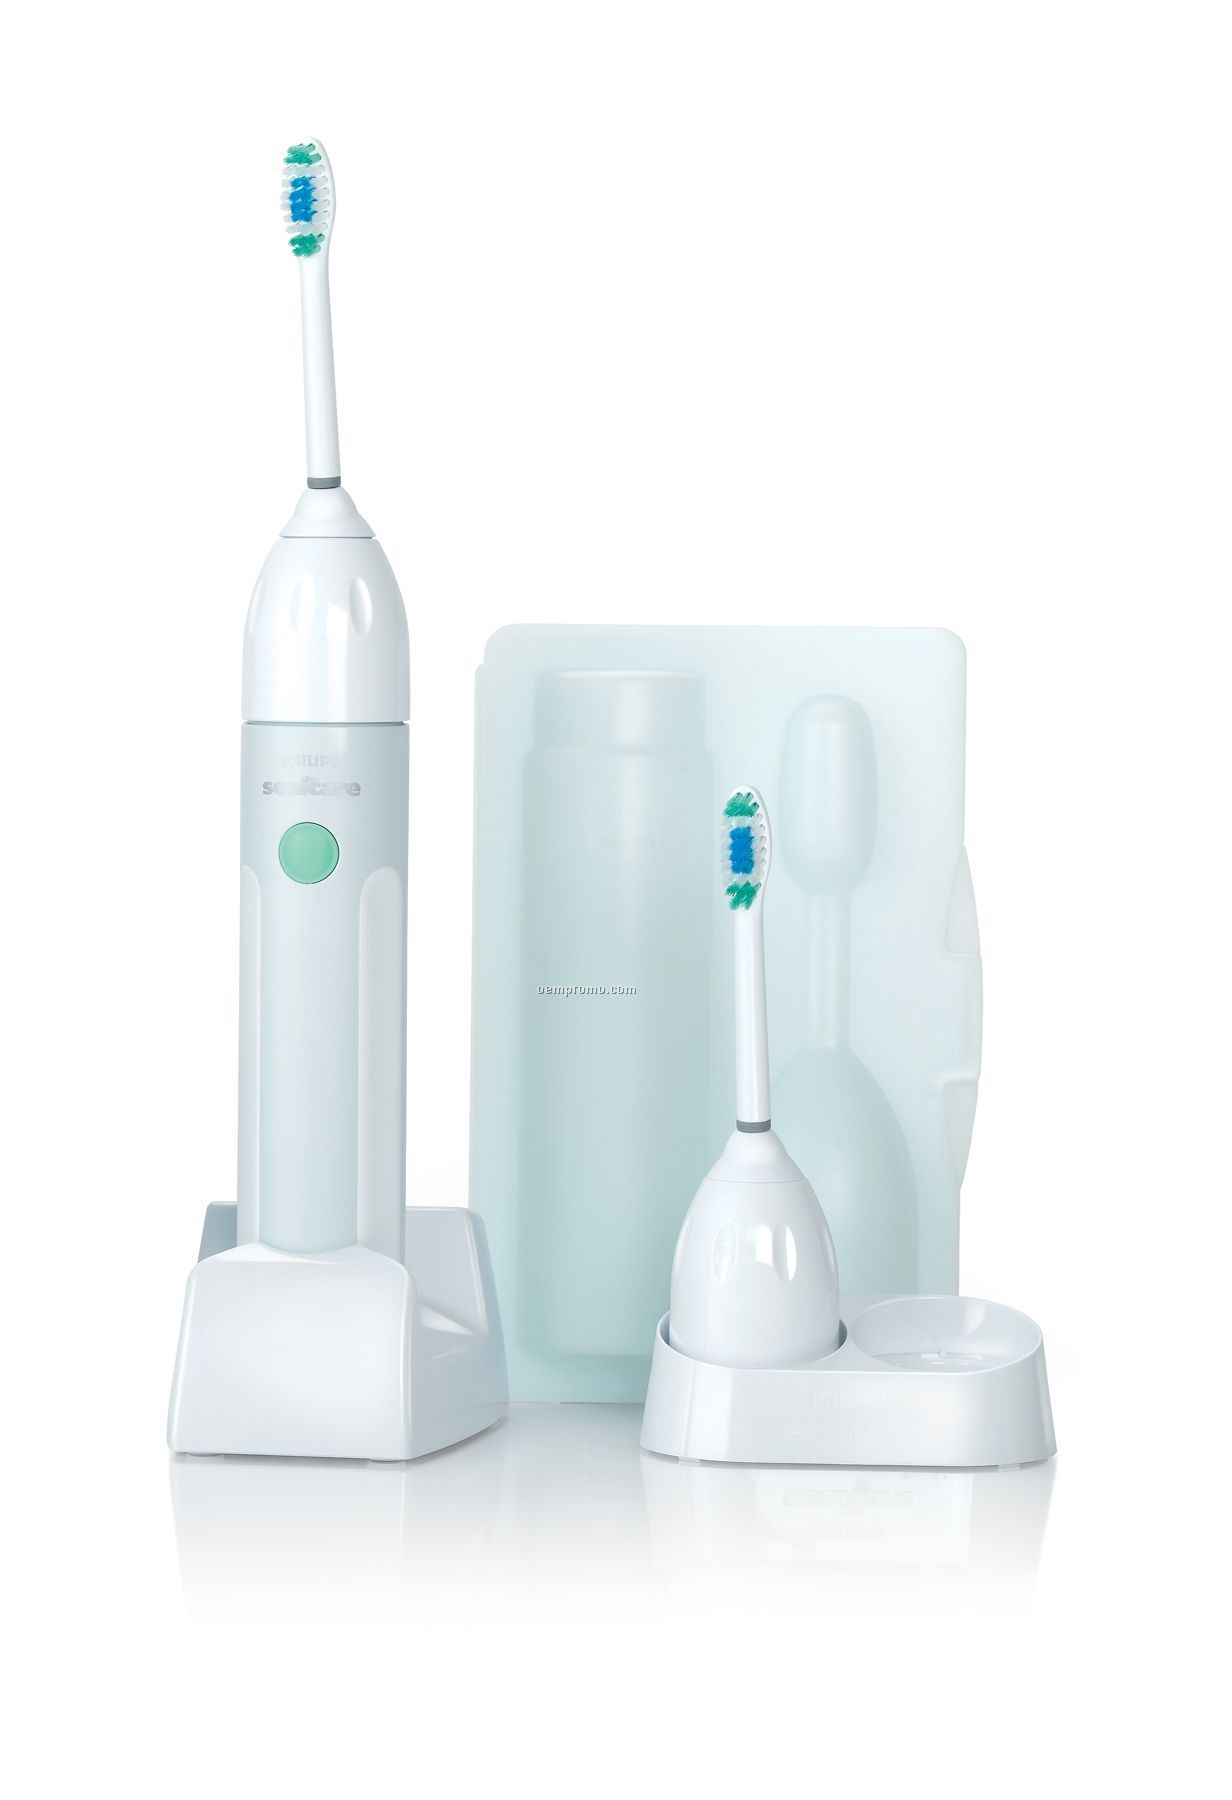 Phillips Sonicare Essence Electric Toothbrush W/ Quadpacer